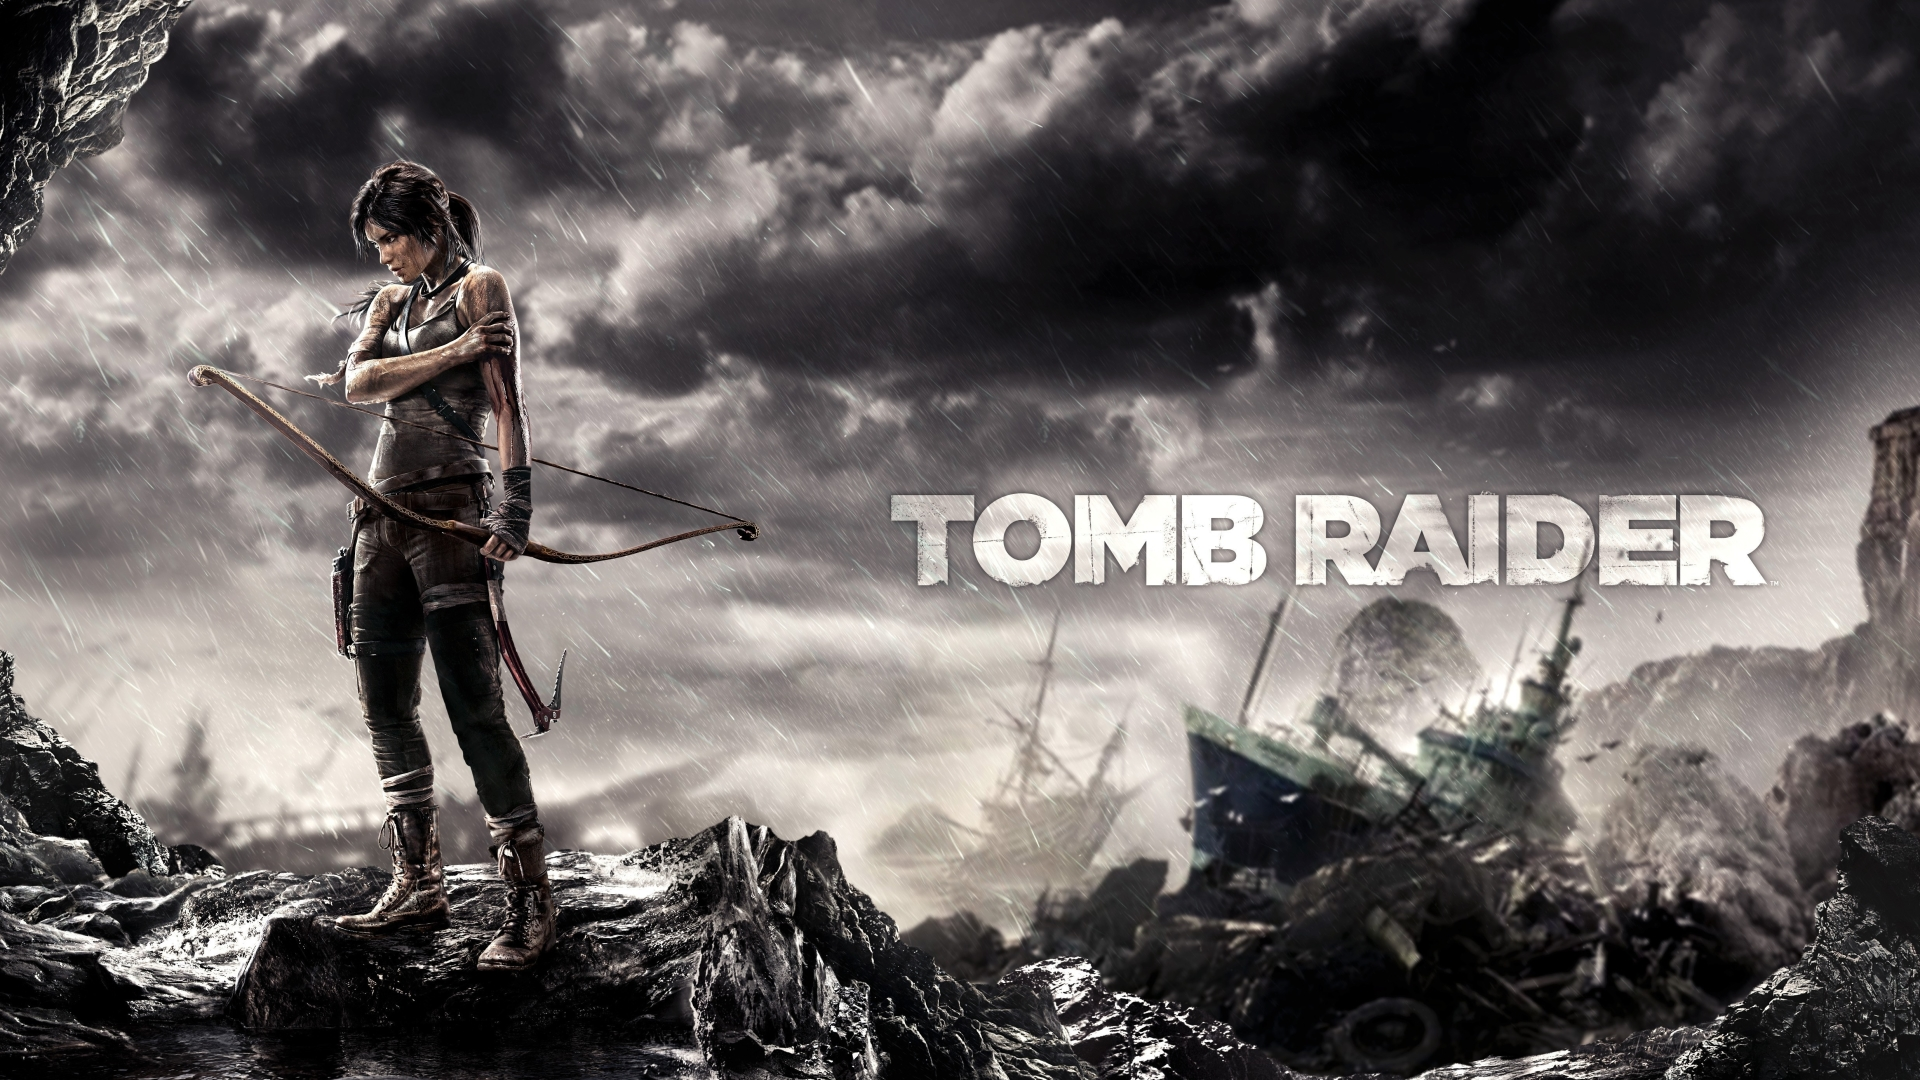 1920x1080 Tomb Raider Lara Croft Art 1080p Laptop Full Hd